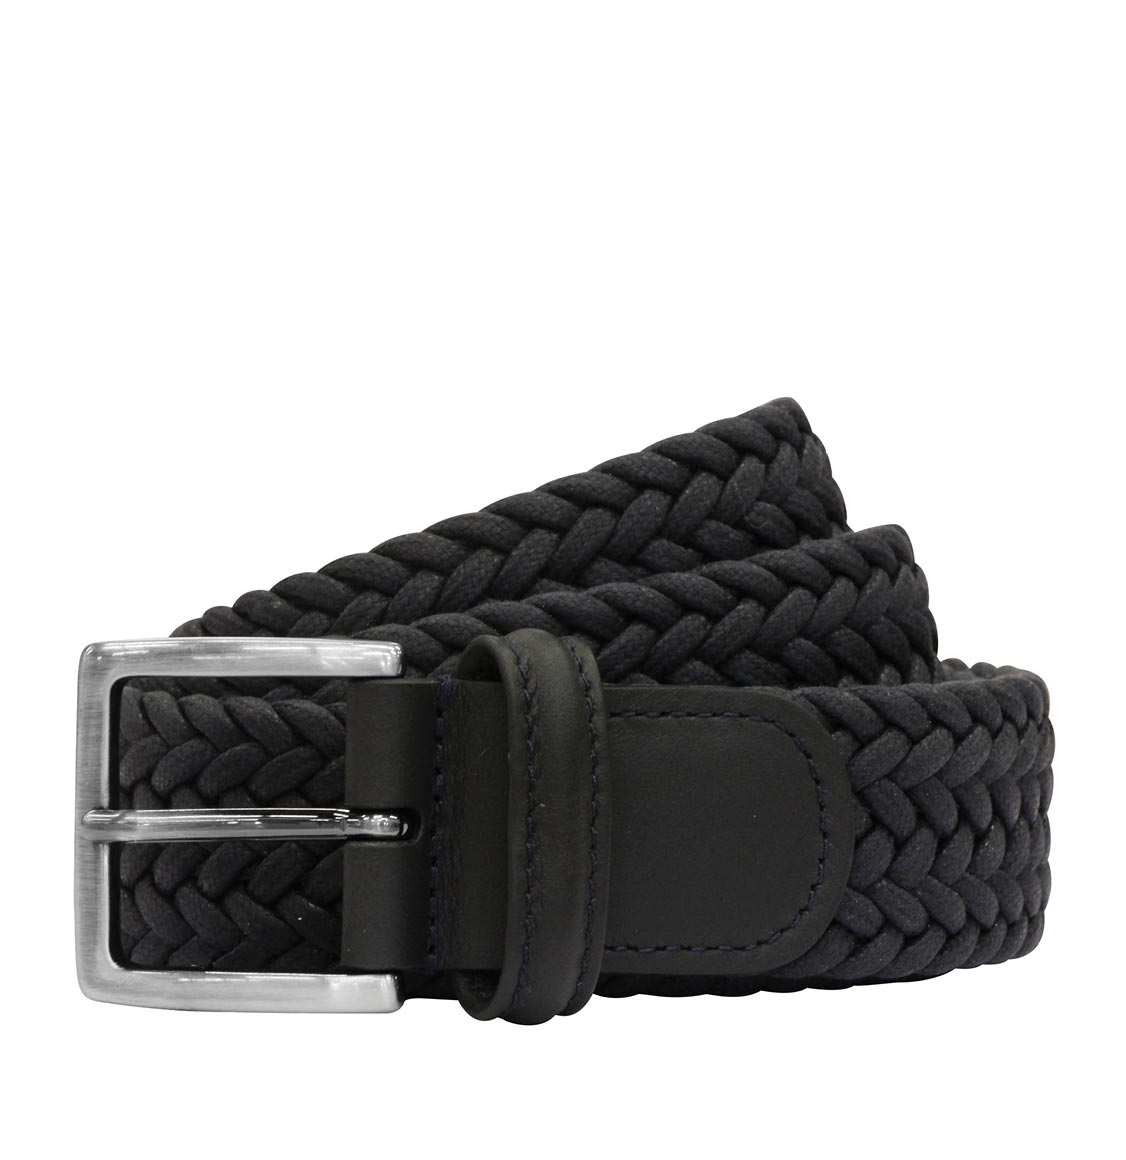 Anderson's Waxed Leather-Trimmed Woven Belt Blue